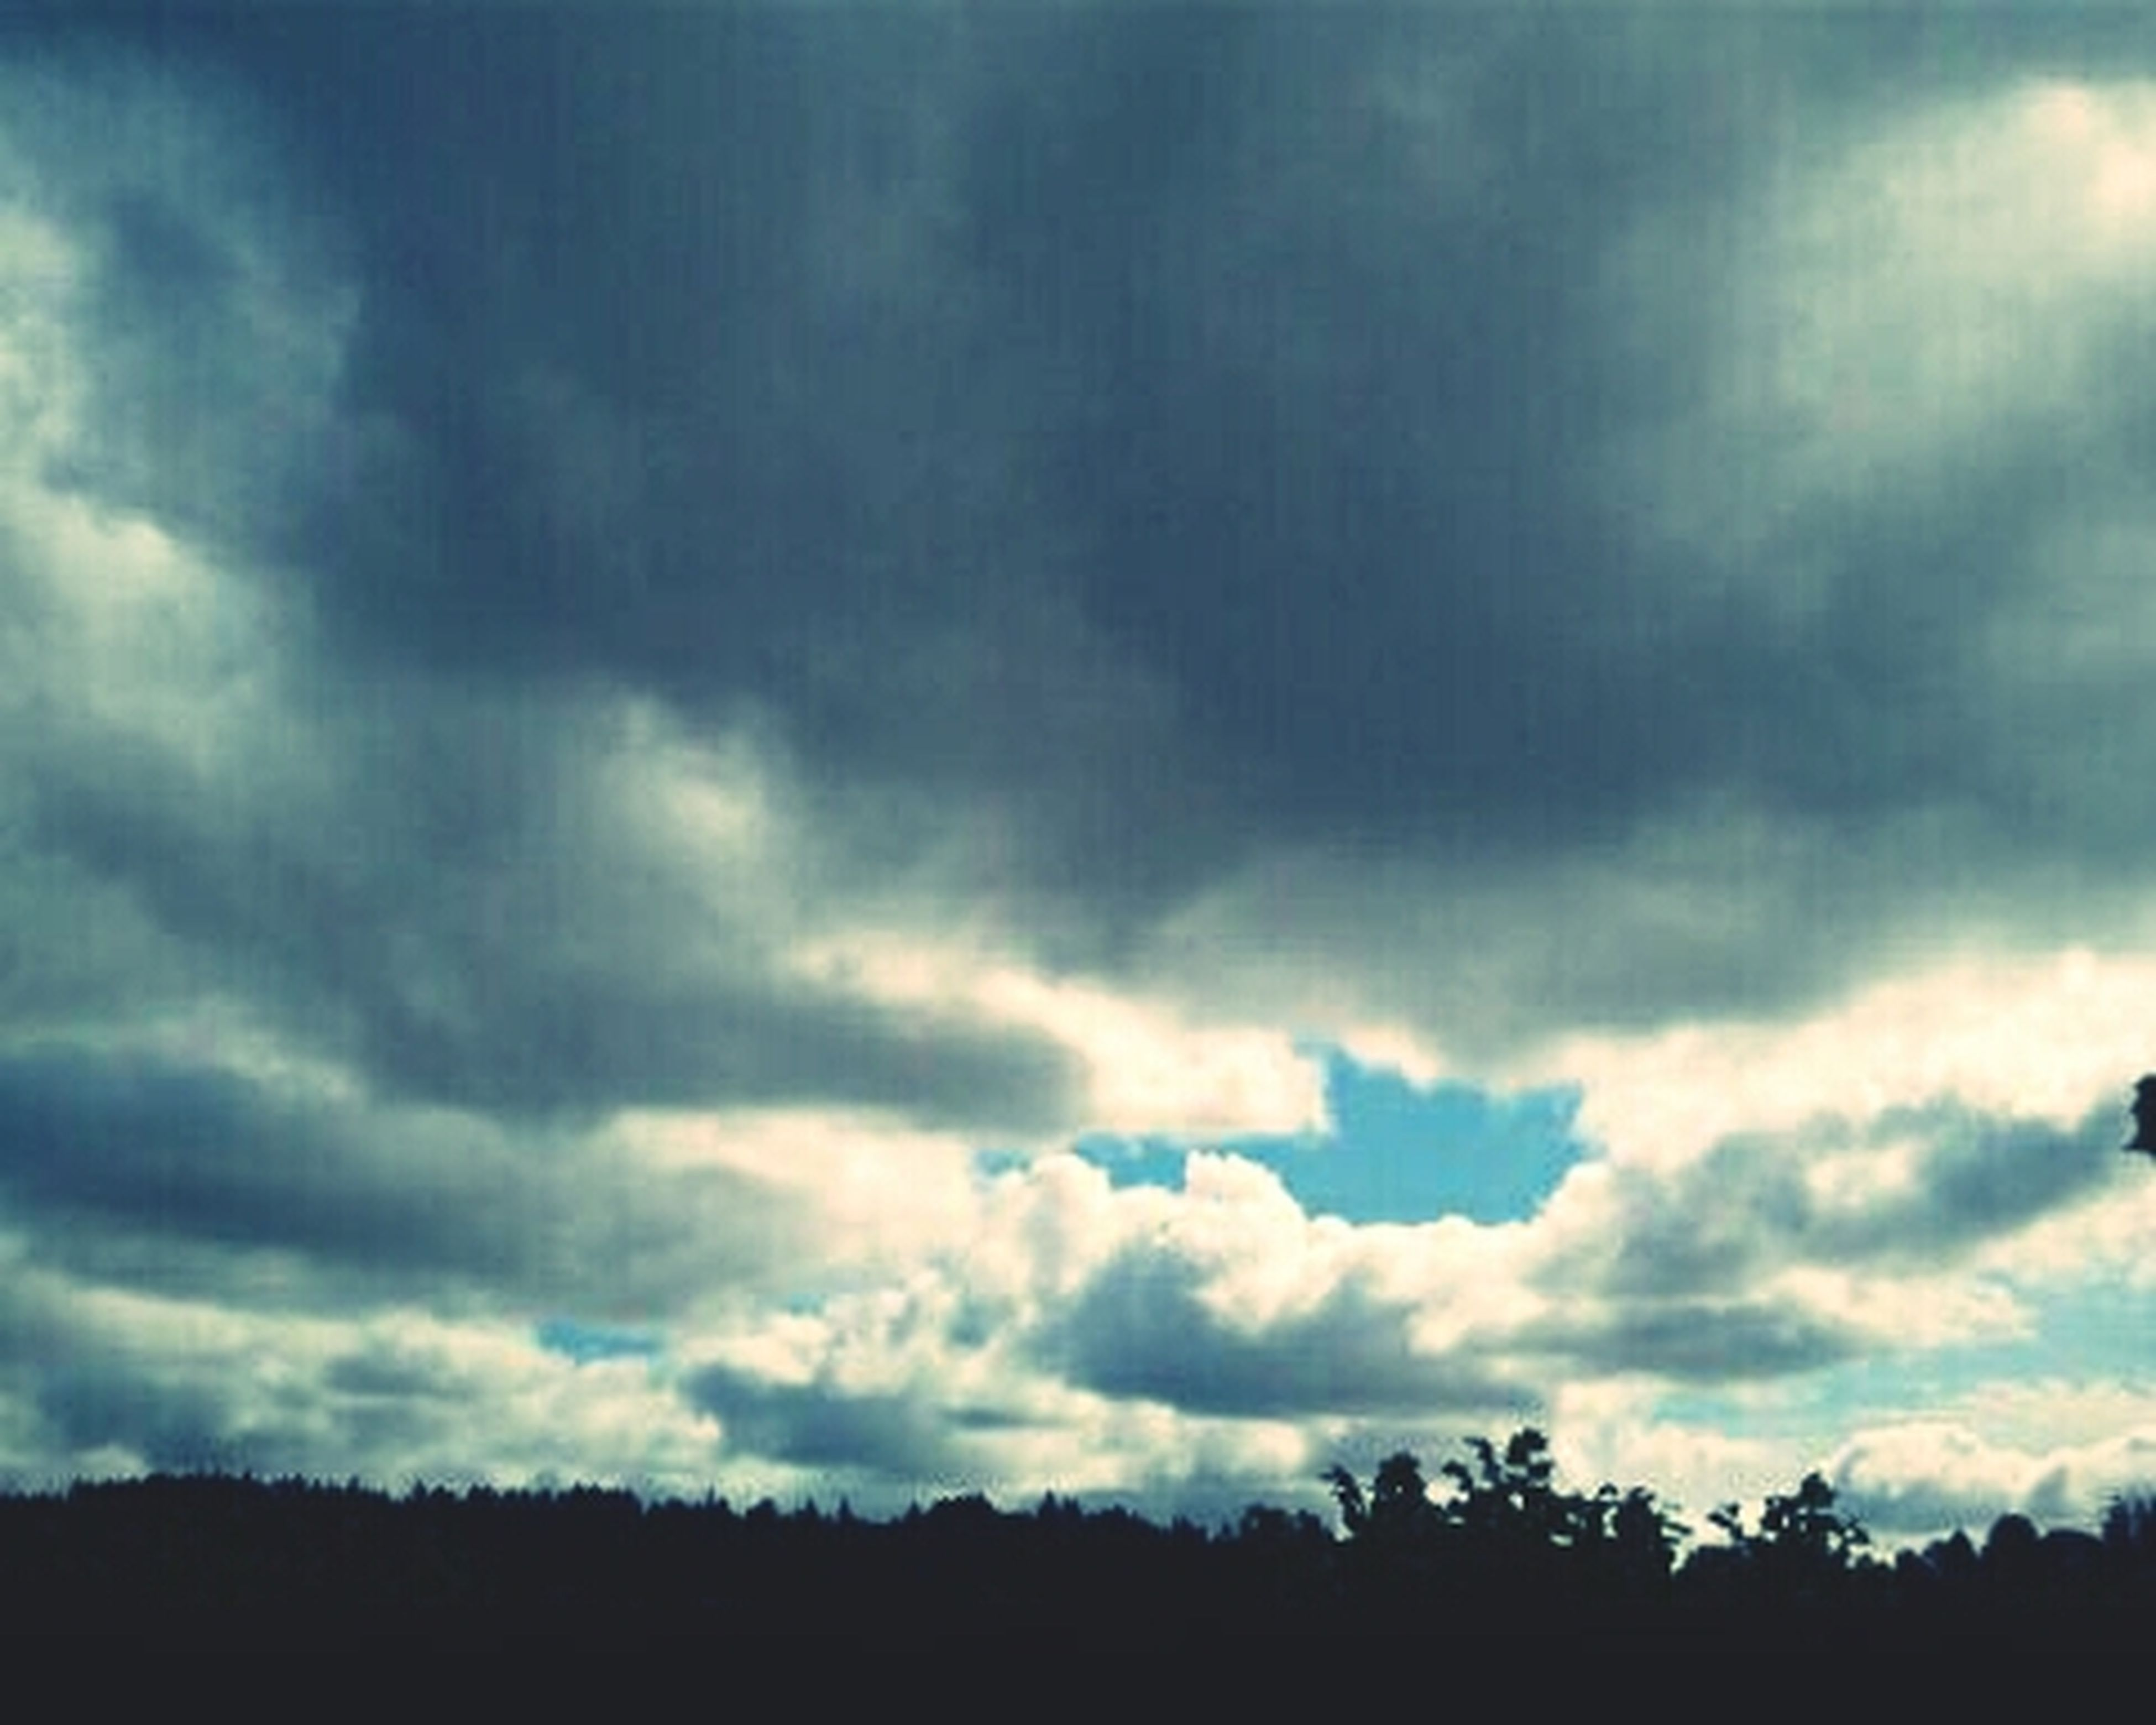 sky, cloud - sky, cloudy, silhouette, tranquility, tranquil scene, scenics, beauty in nature, nature, low angle view, weather, overcast, cloud, tree, cloudscape, storm cloud, dusk, dramatic sky, idyllic, landscape